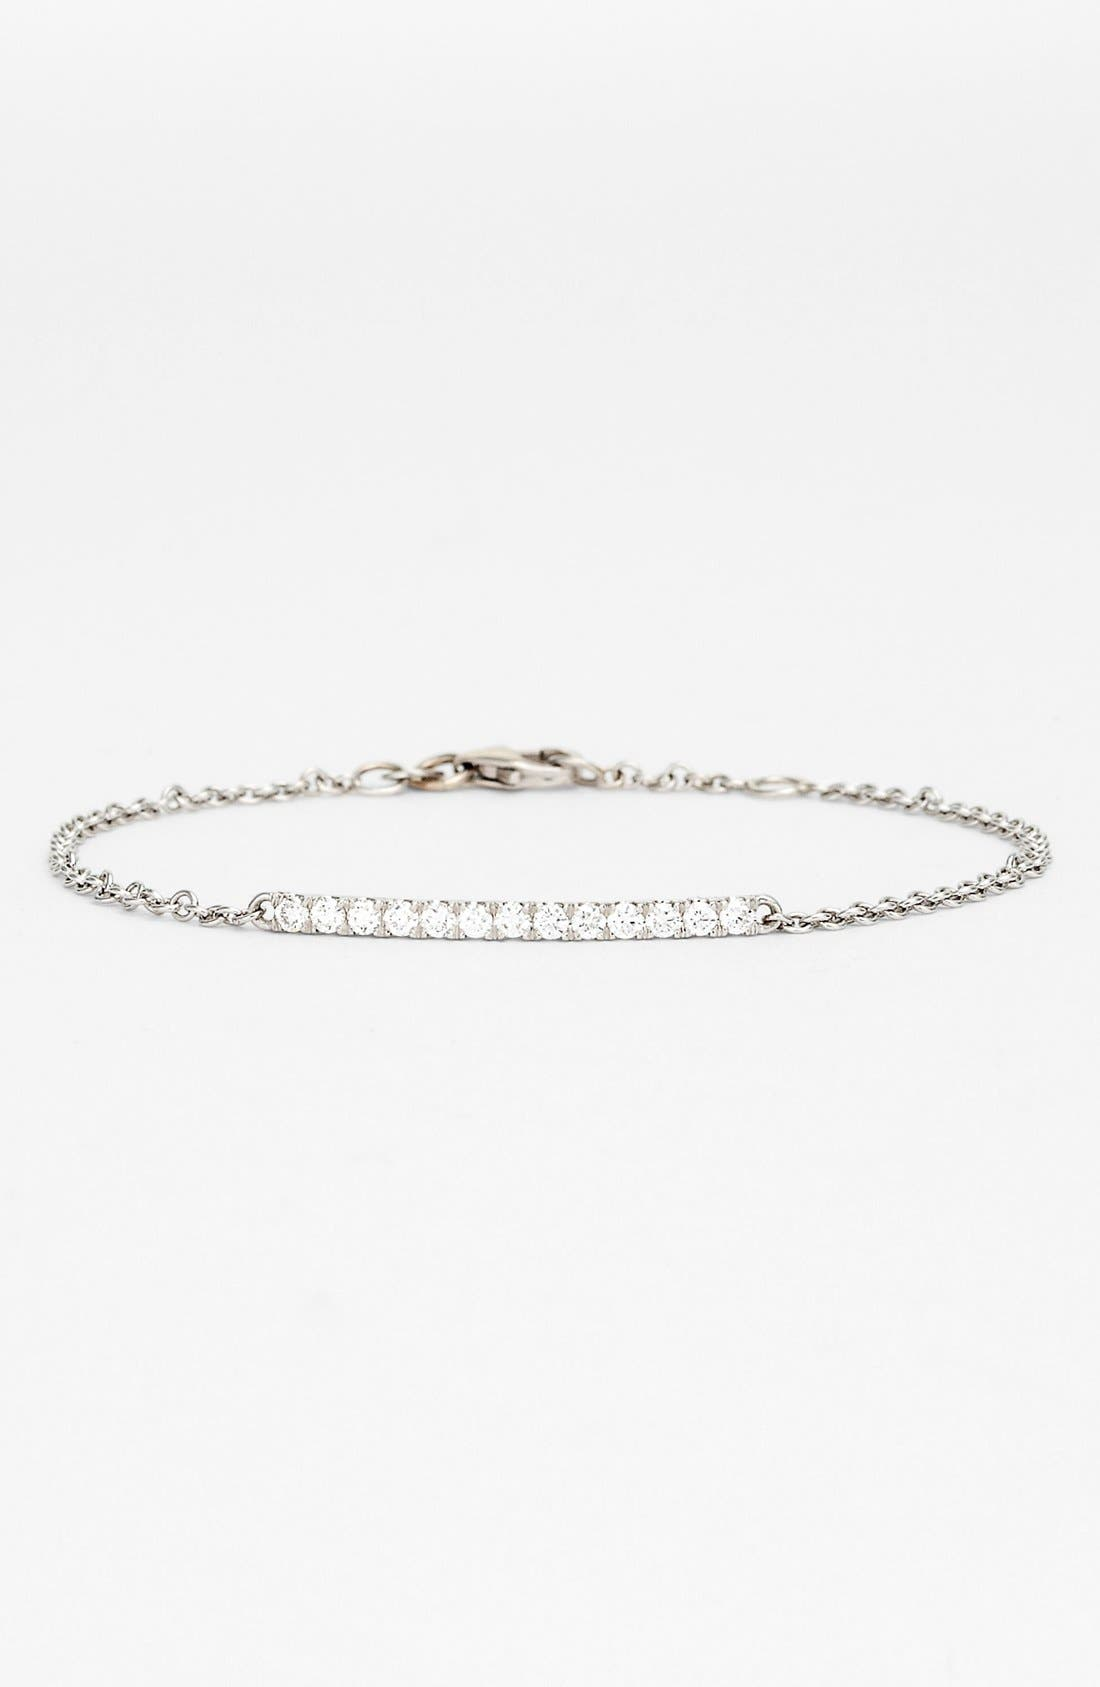 Alternate Image 1 Selected - Bony Levy 'Stick' Pavé Diamond Bar Bracelet (Nordstrom Exclusive)